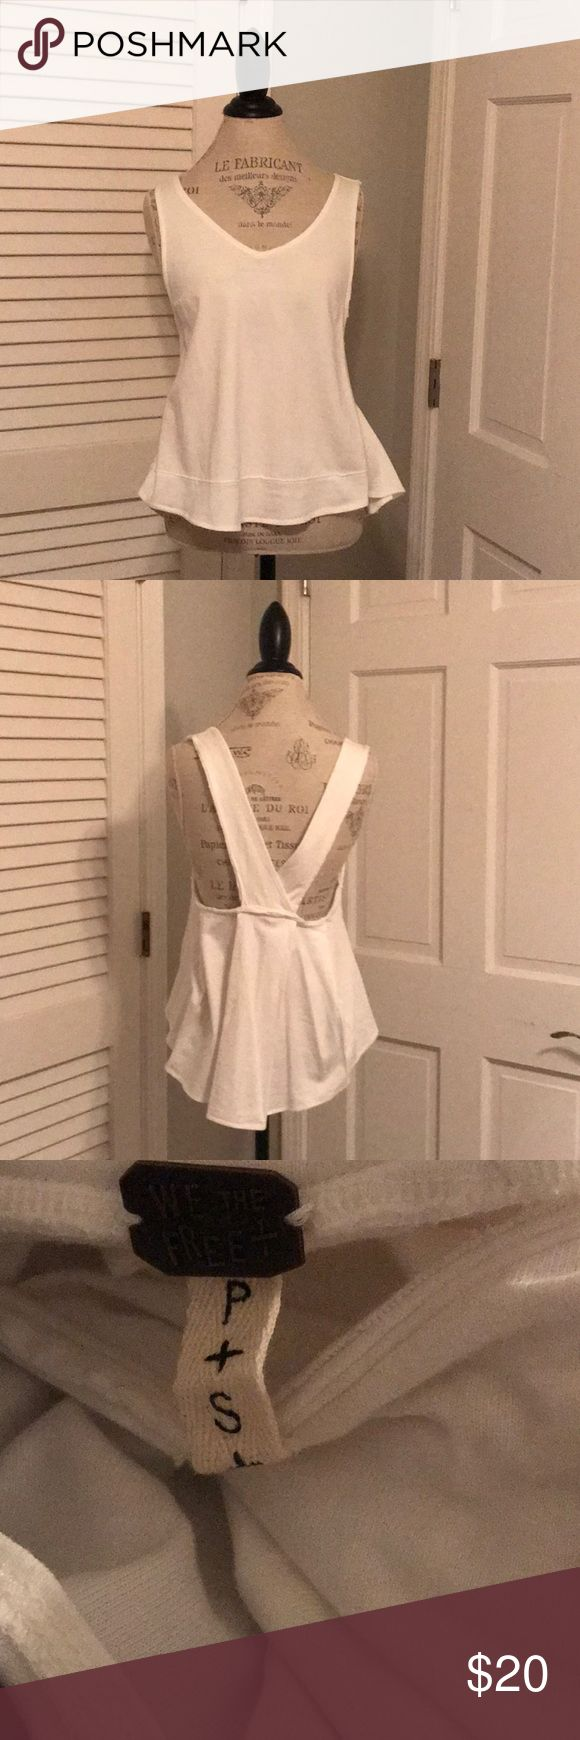 """Free People S Cotton Criss Cross Heavy sweat Tank Free people with the free heavy cotton crisscross back size small tank top- unworn Chest 17.5"""""""" Length 23.5"""" Free People Tops Tank Tops"""